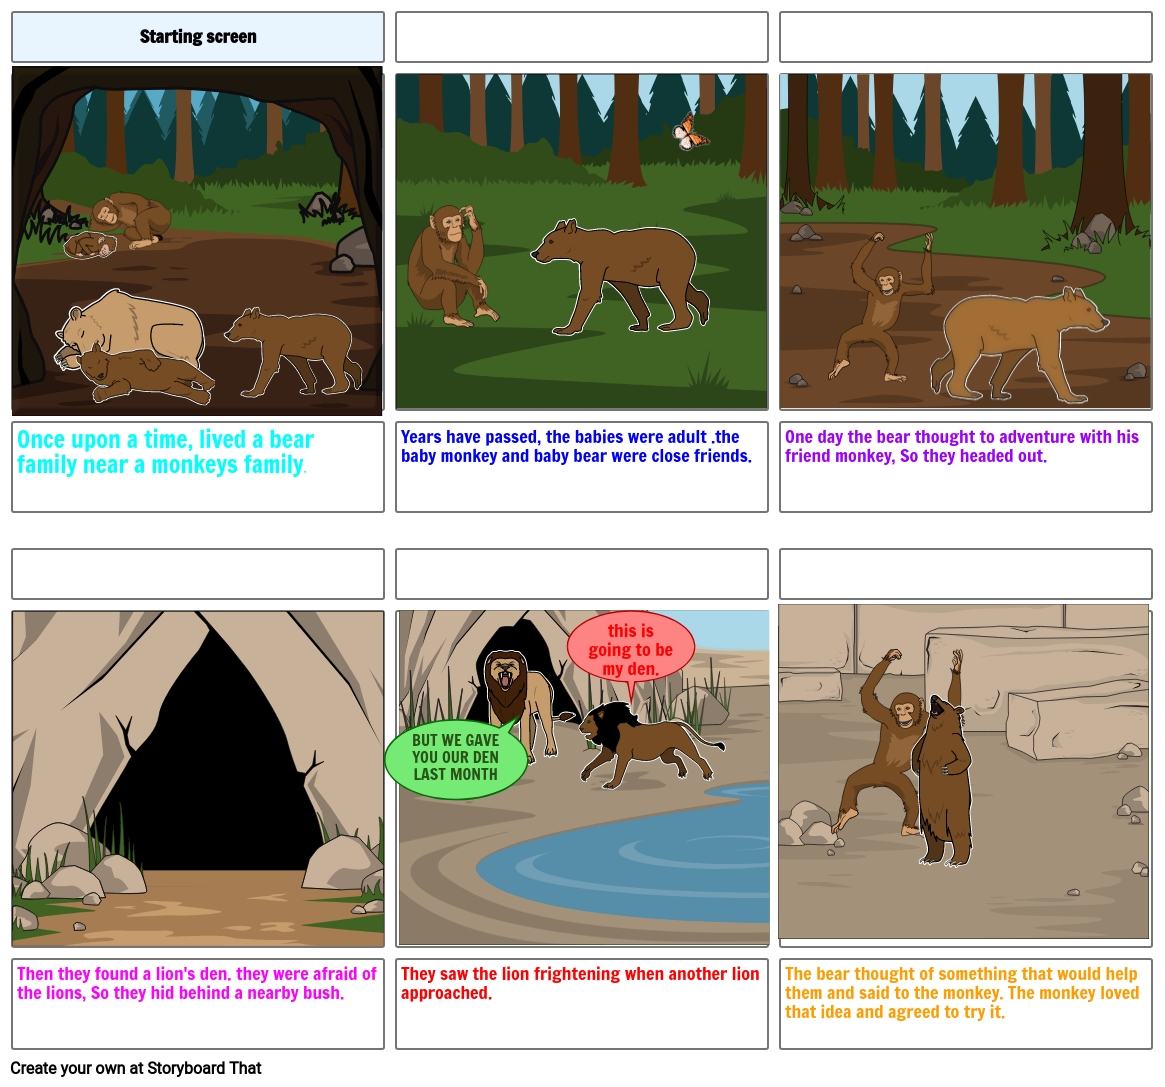 The bear and The monkey part 1